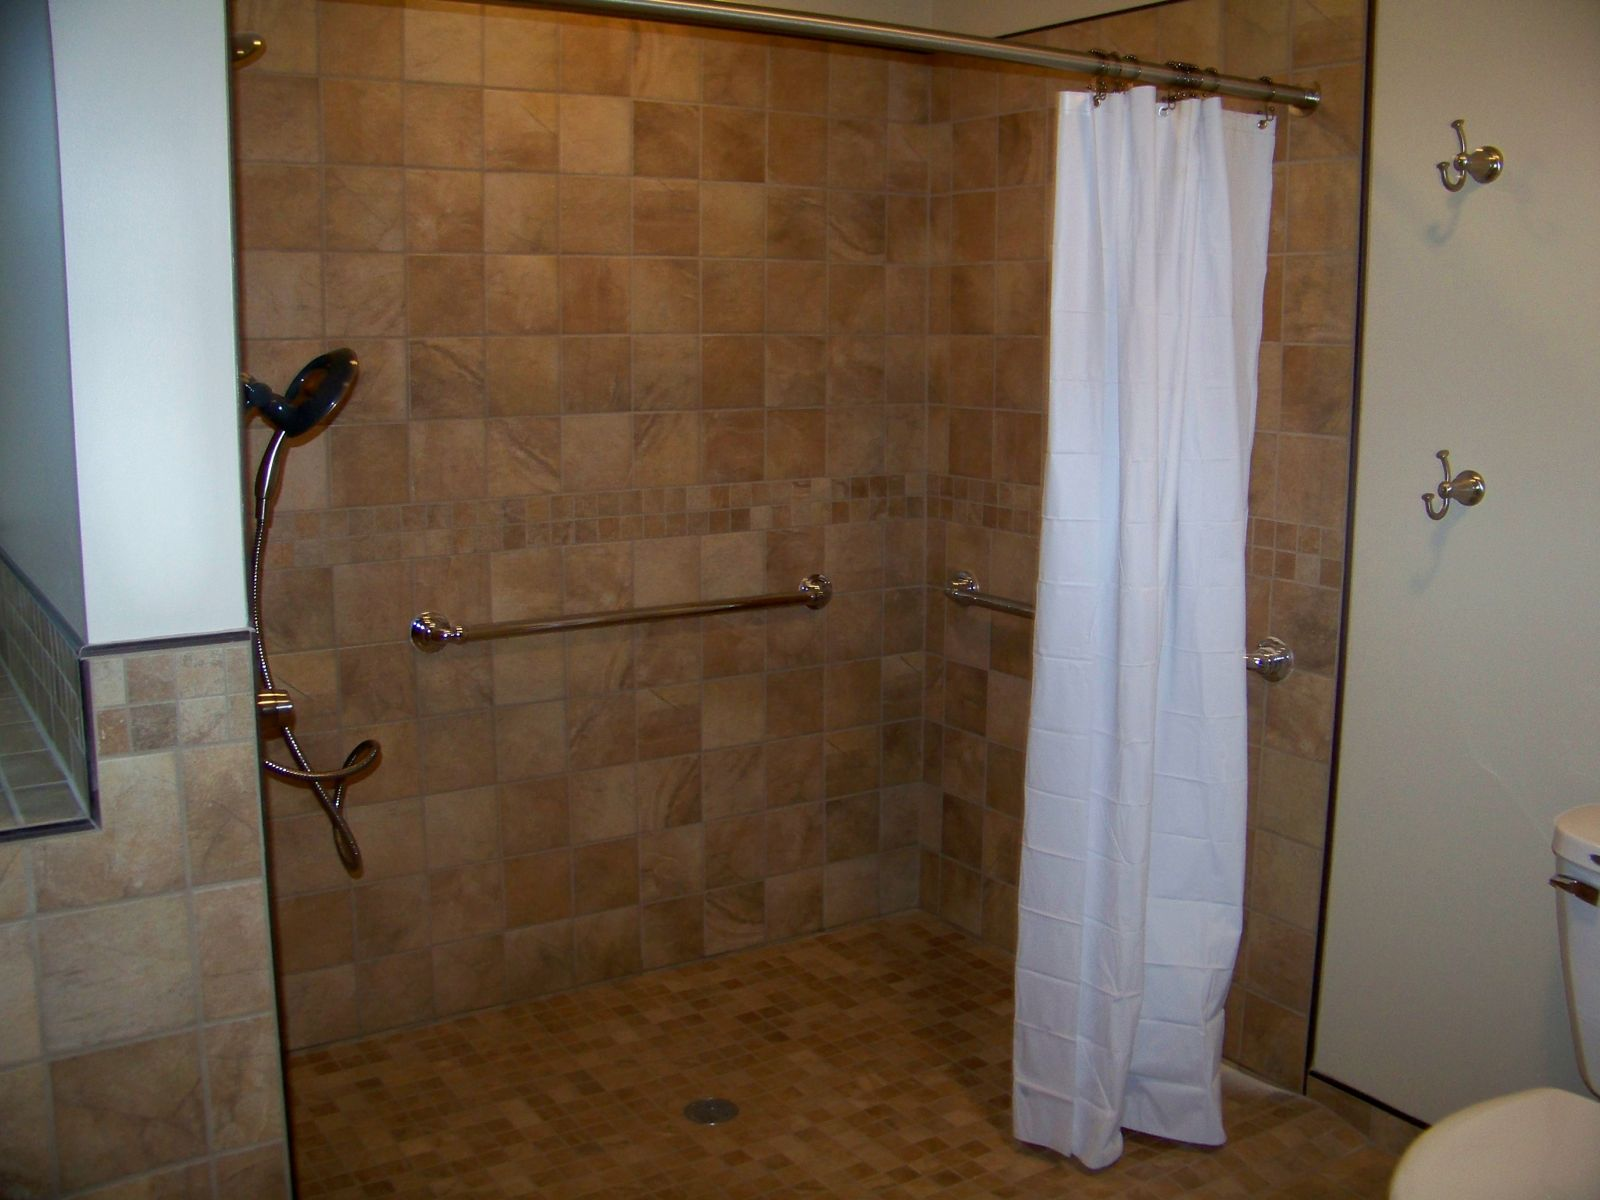 Superieur We Install Quite A Few Curbless Showers. Most Of The Showers We Install Are  Tile, But We Do Install Pre Fab Showers As Well. I Like The Prefab Showers  When ...